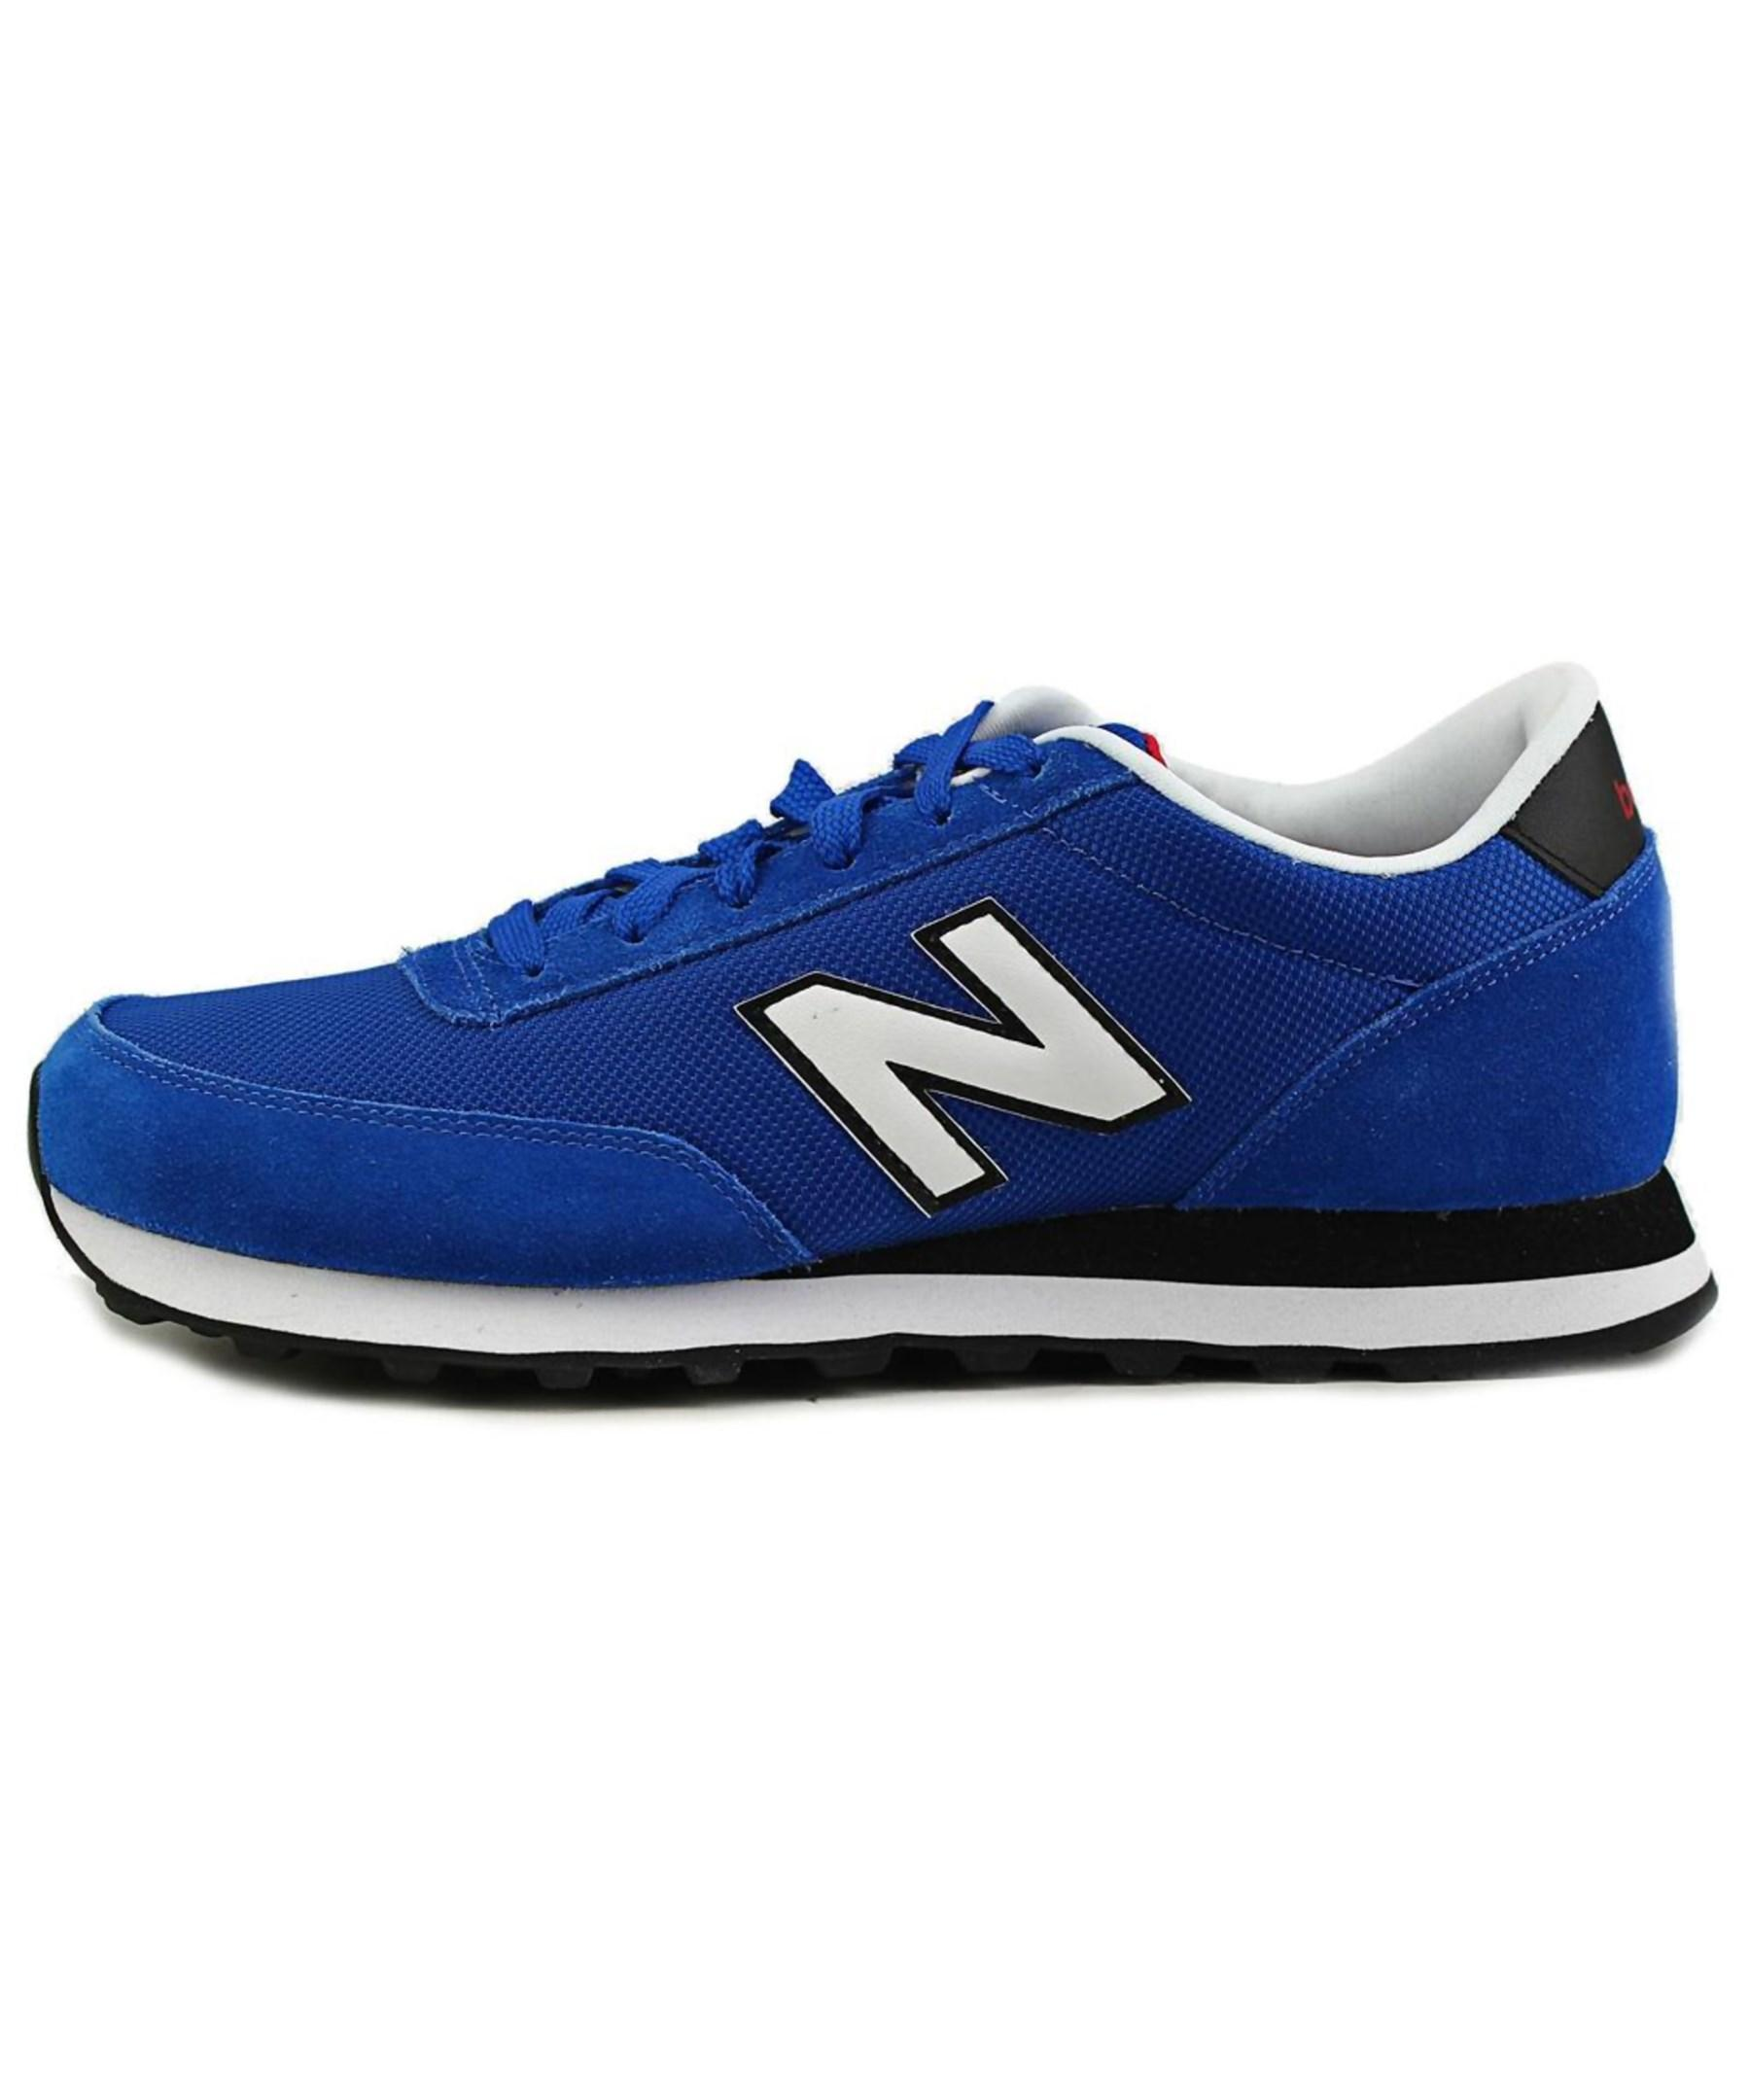 Lyst - New balance Ml501 Leather Fashion Sneakers in Blue for Men